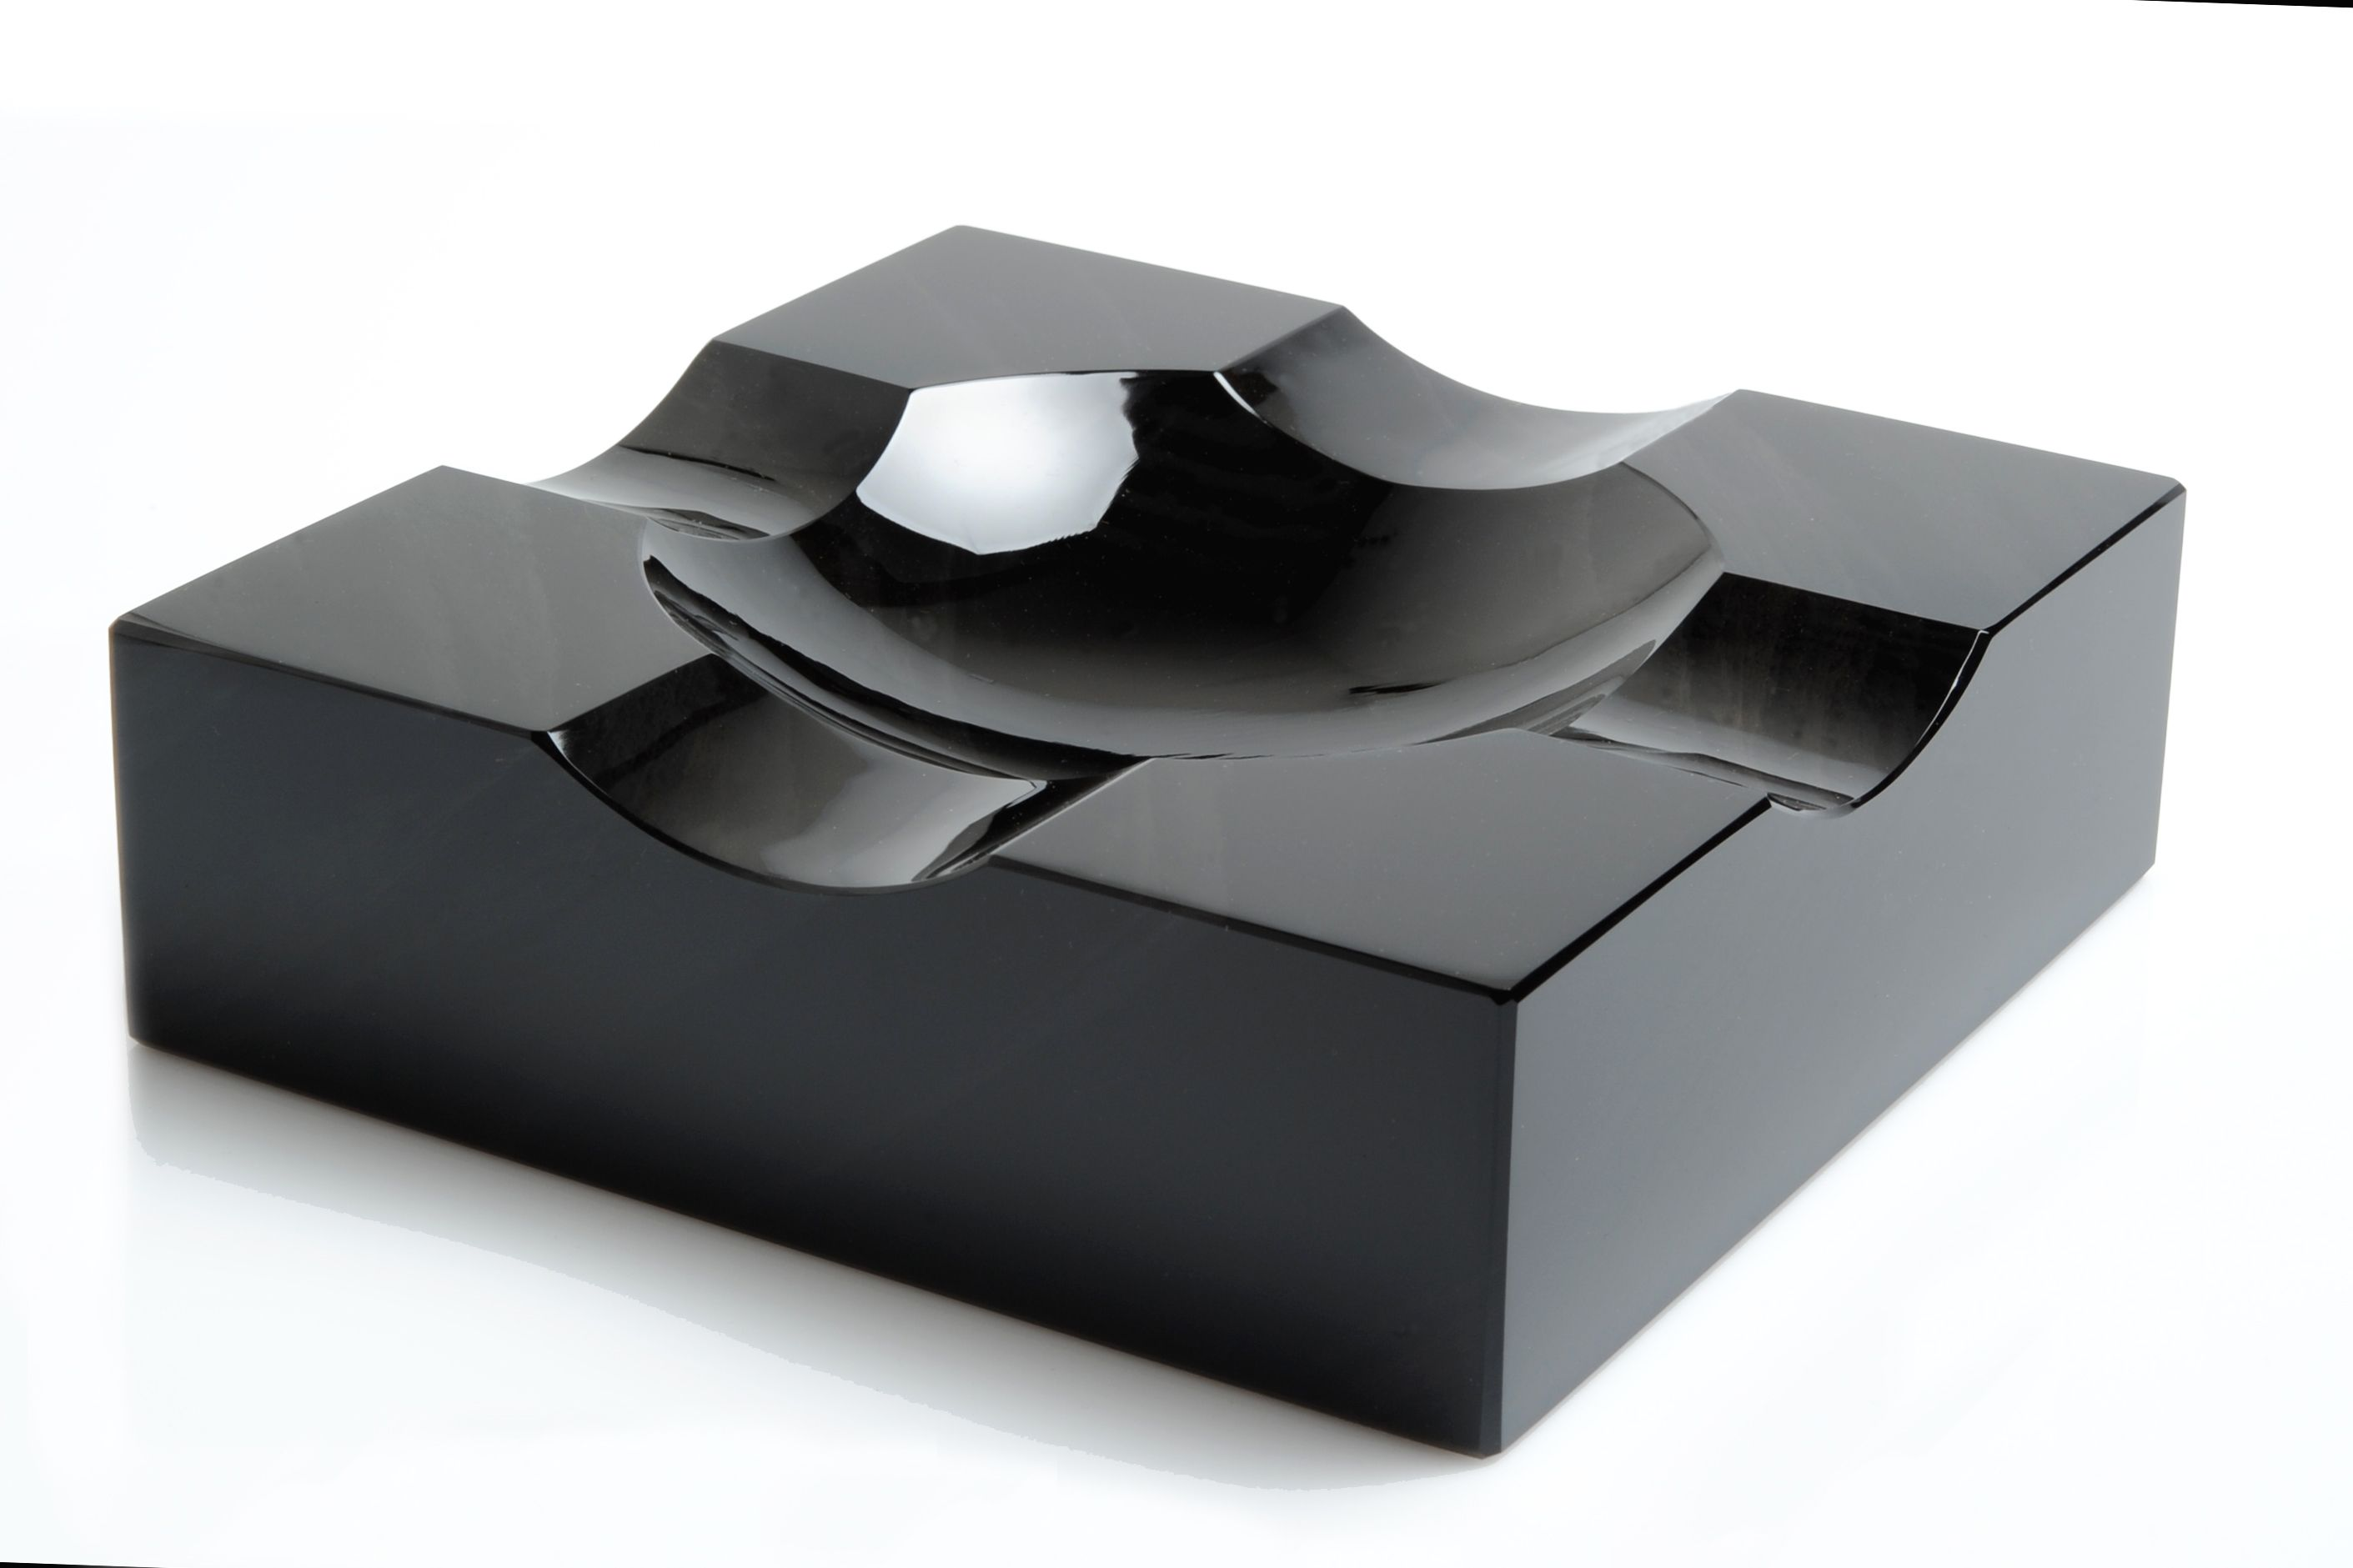 Norvan Exceptional Cigar Ashtray Made In Obsidian From Ararat Mount 190 X 190 X 60 Mm Cigar Ashtray Cigar Accessories Cigar Room